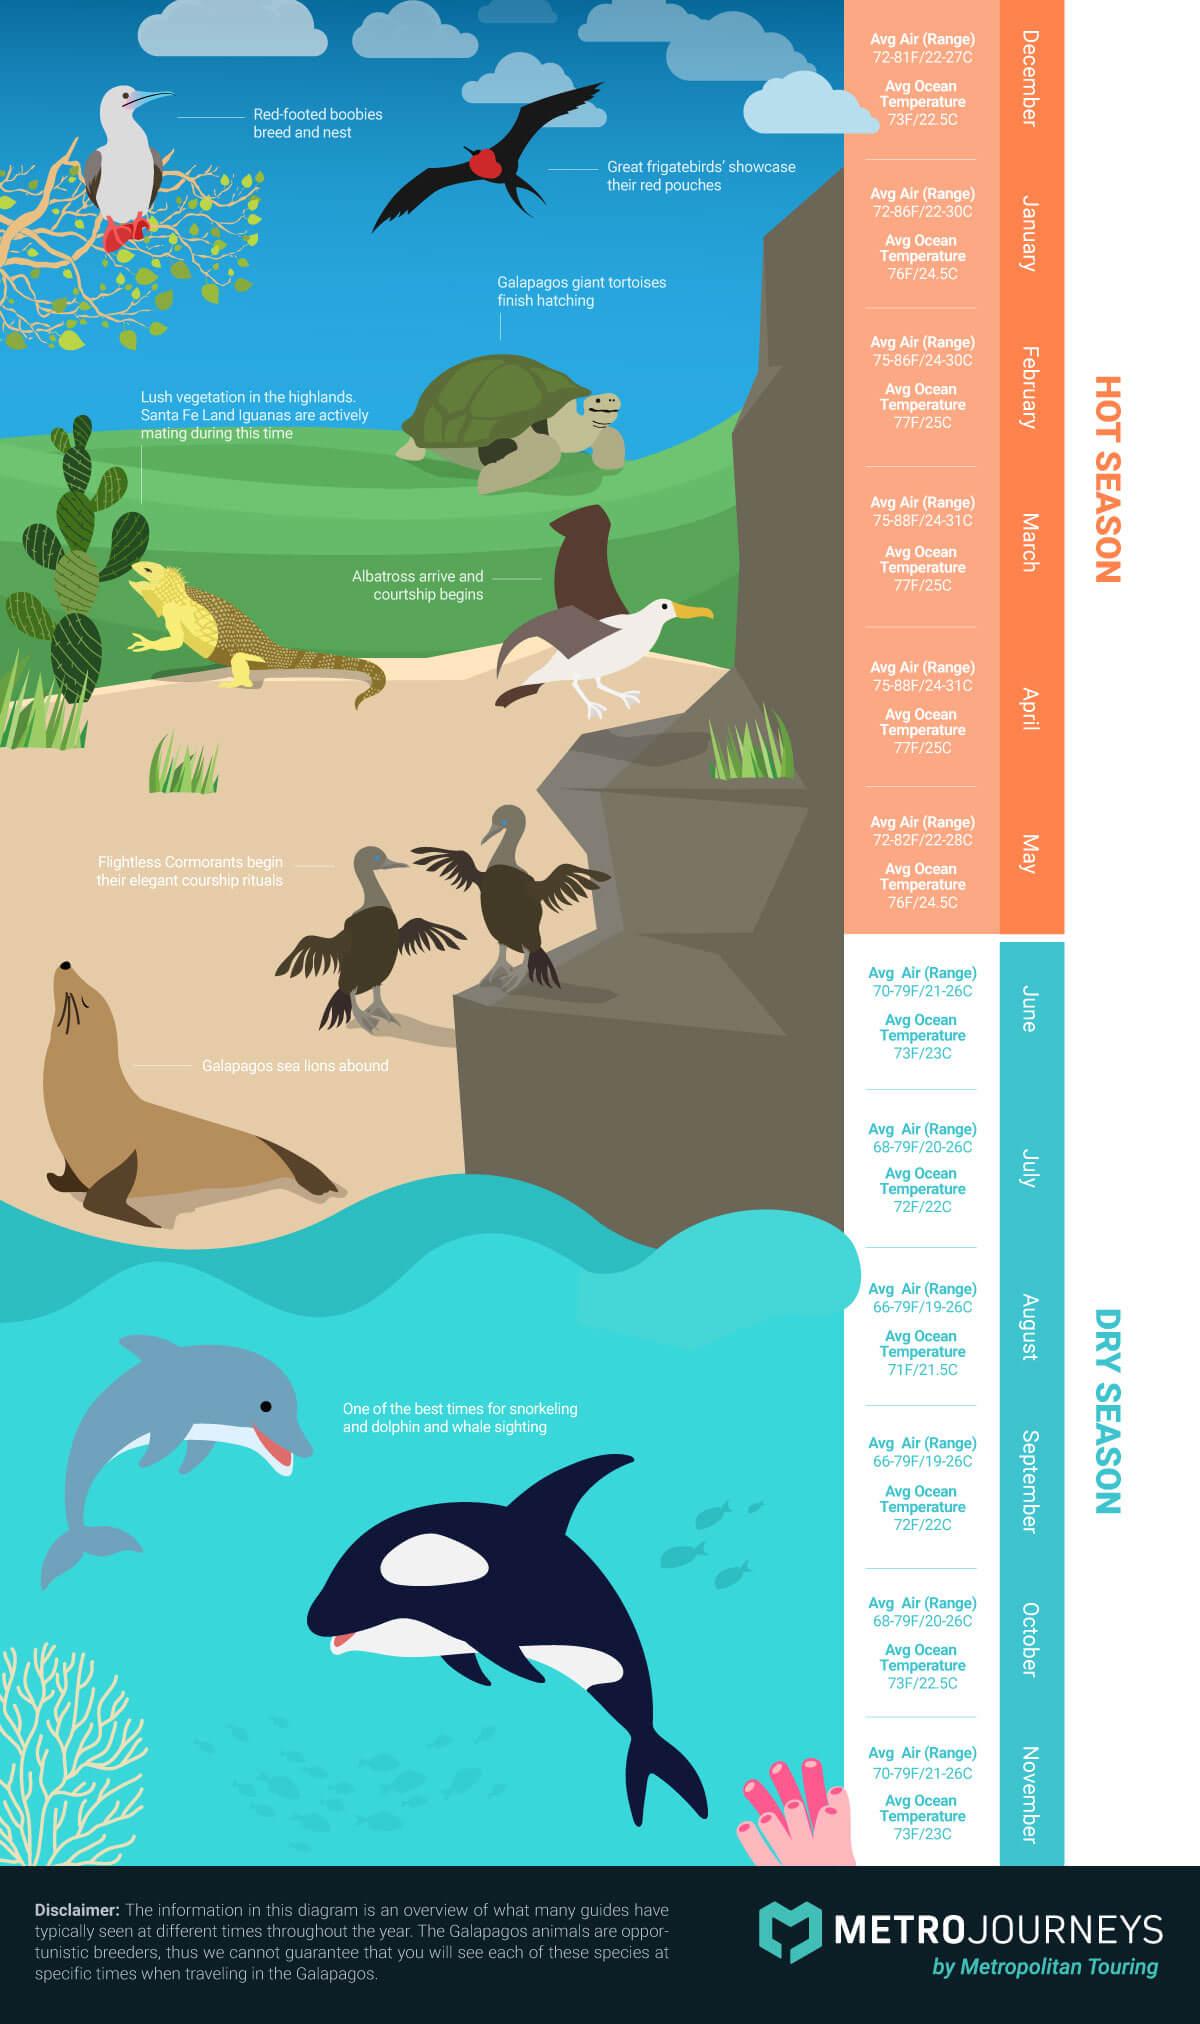 Galapagos Wildlife Activity and Weather Patterns